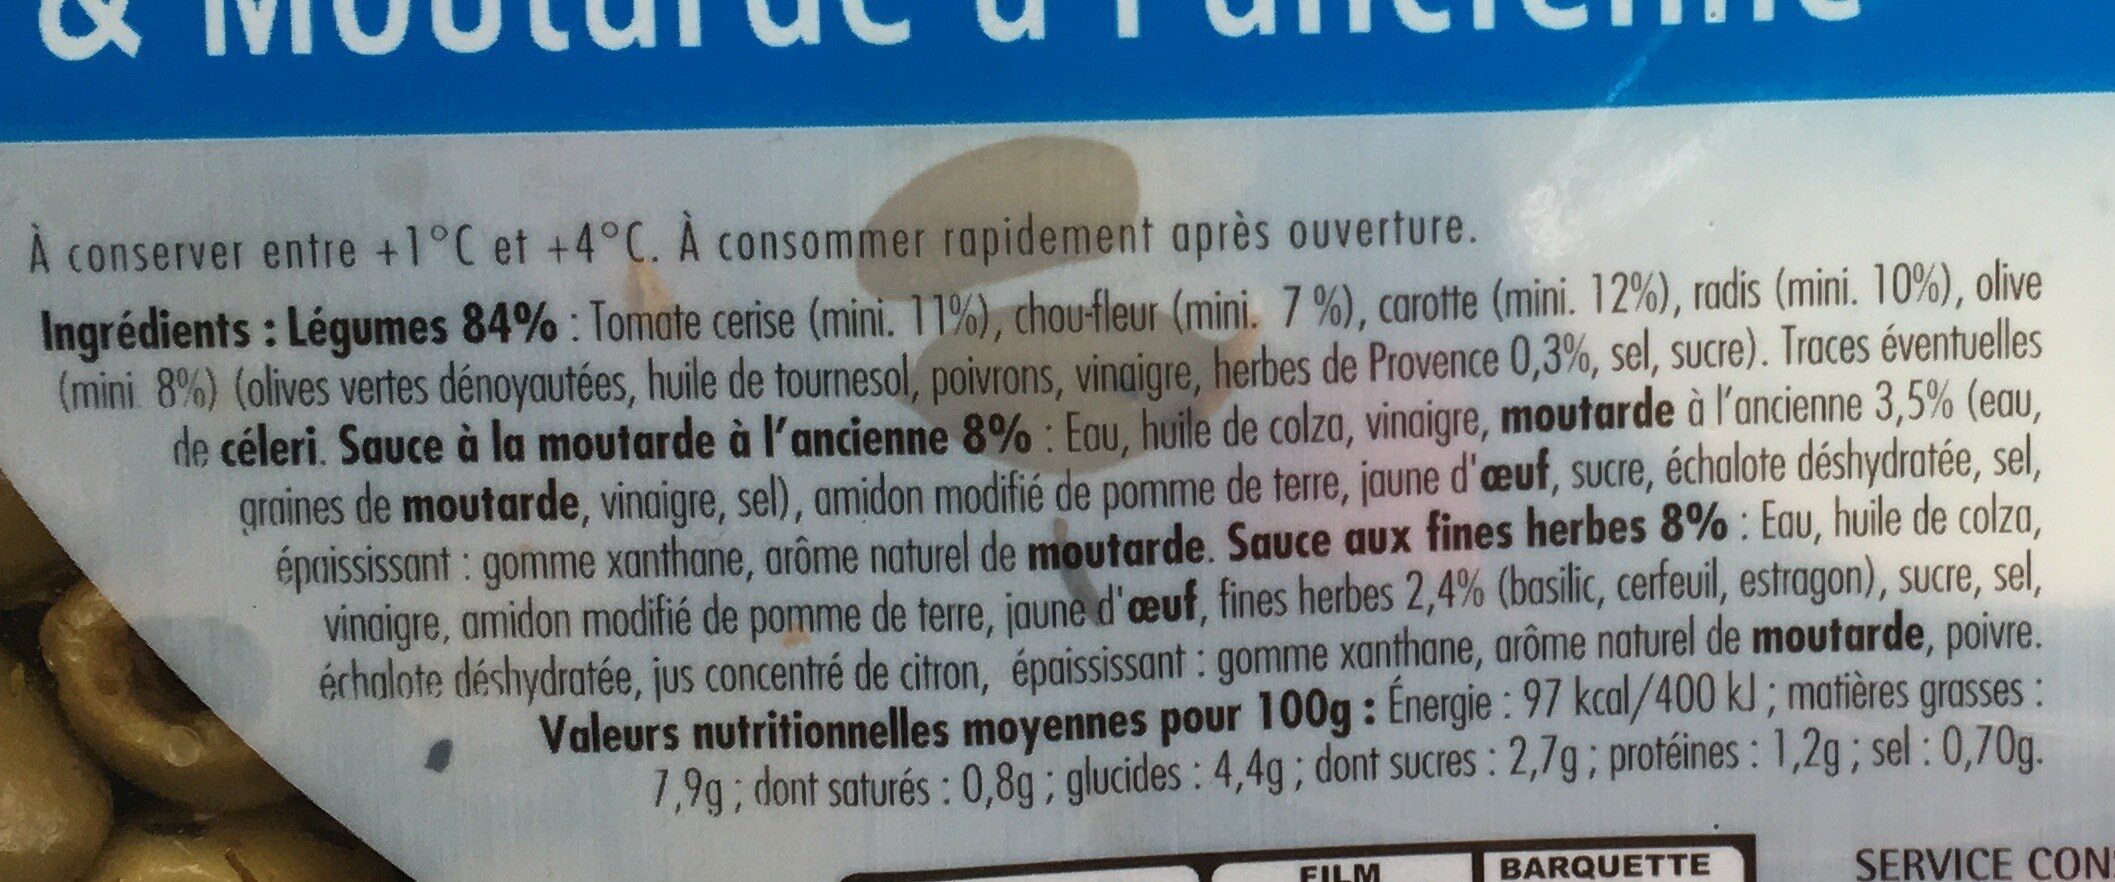 Plateau Apéro 600g - Nutrition facts - fr